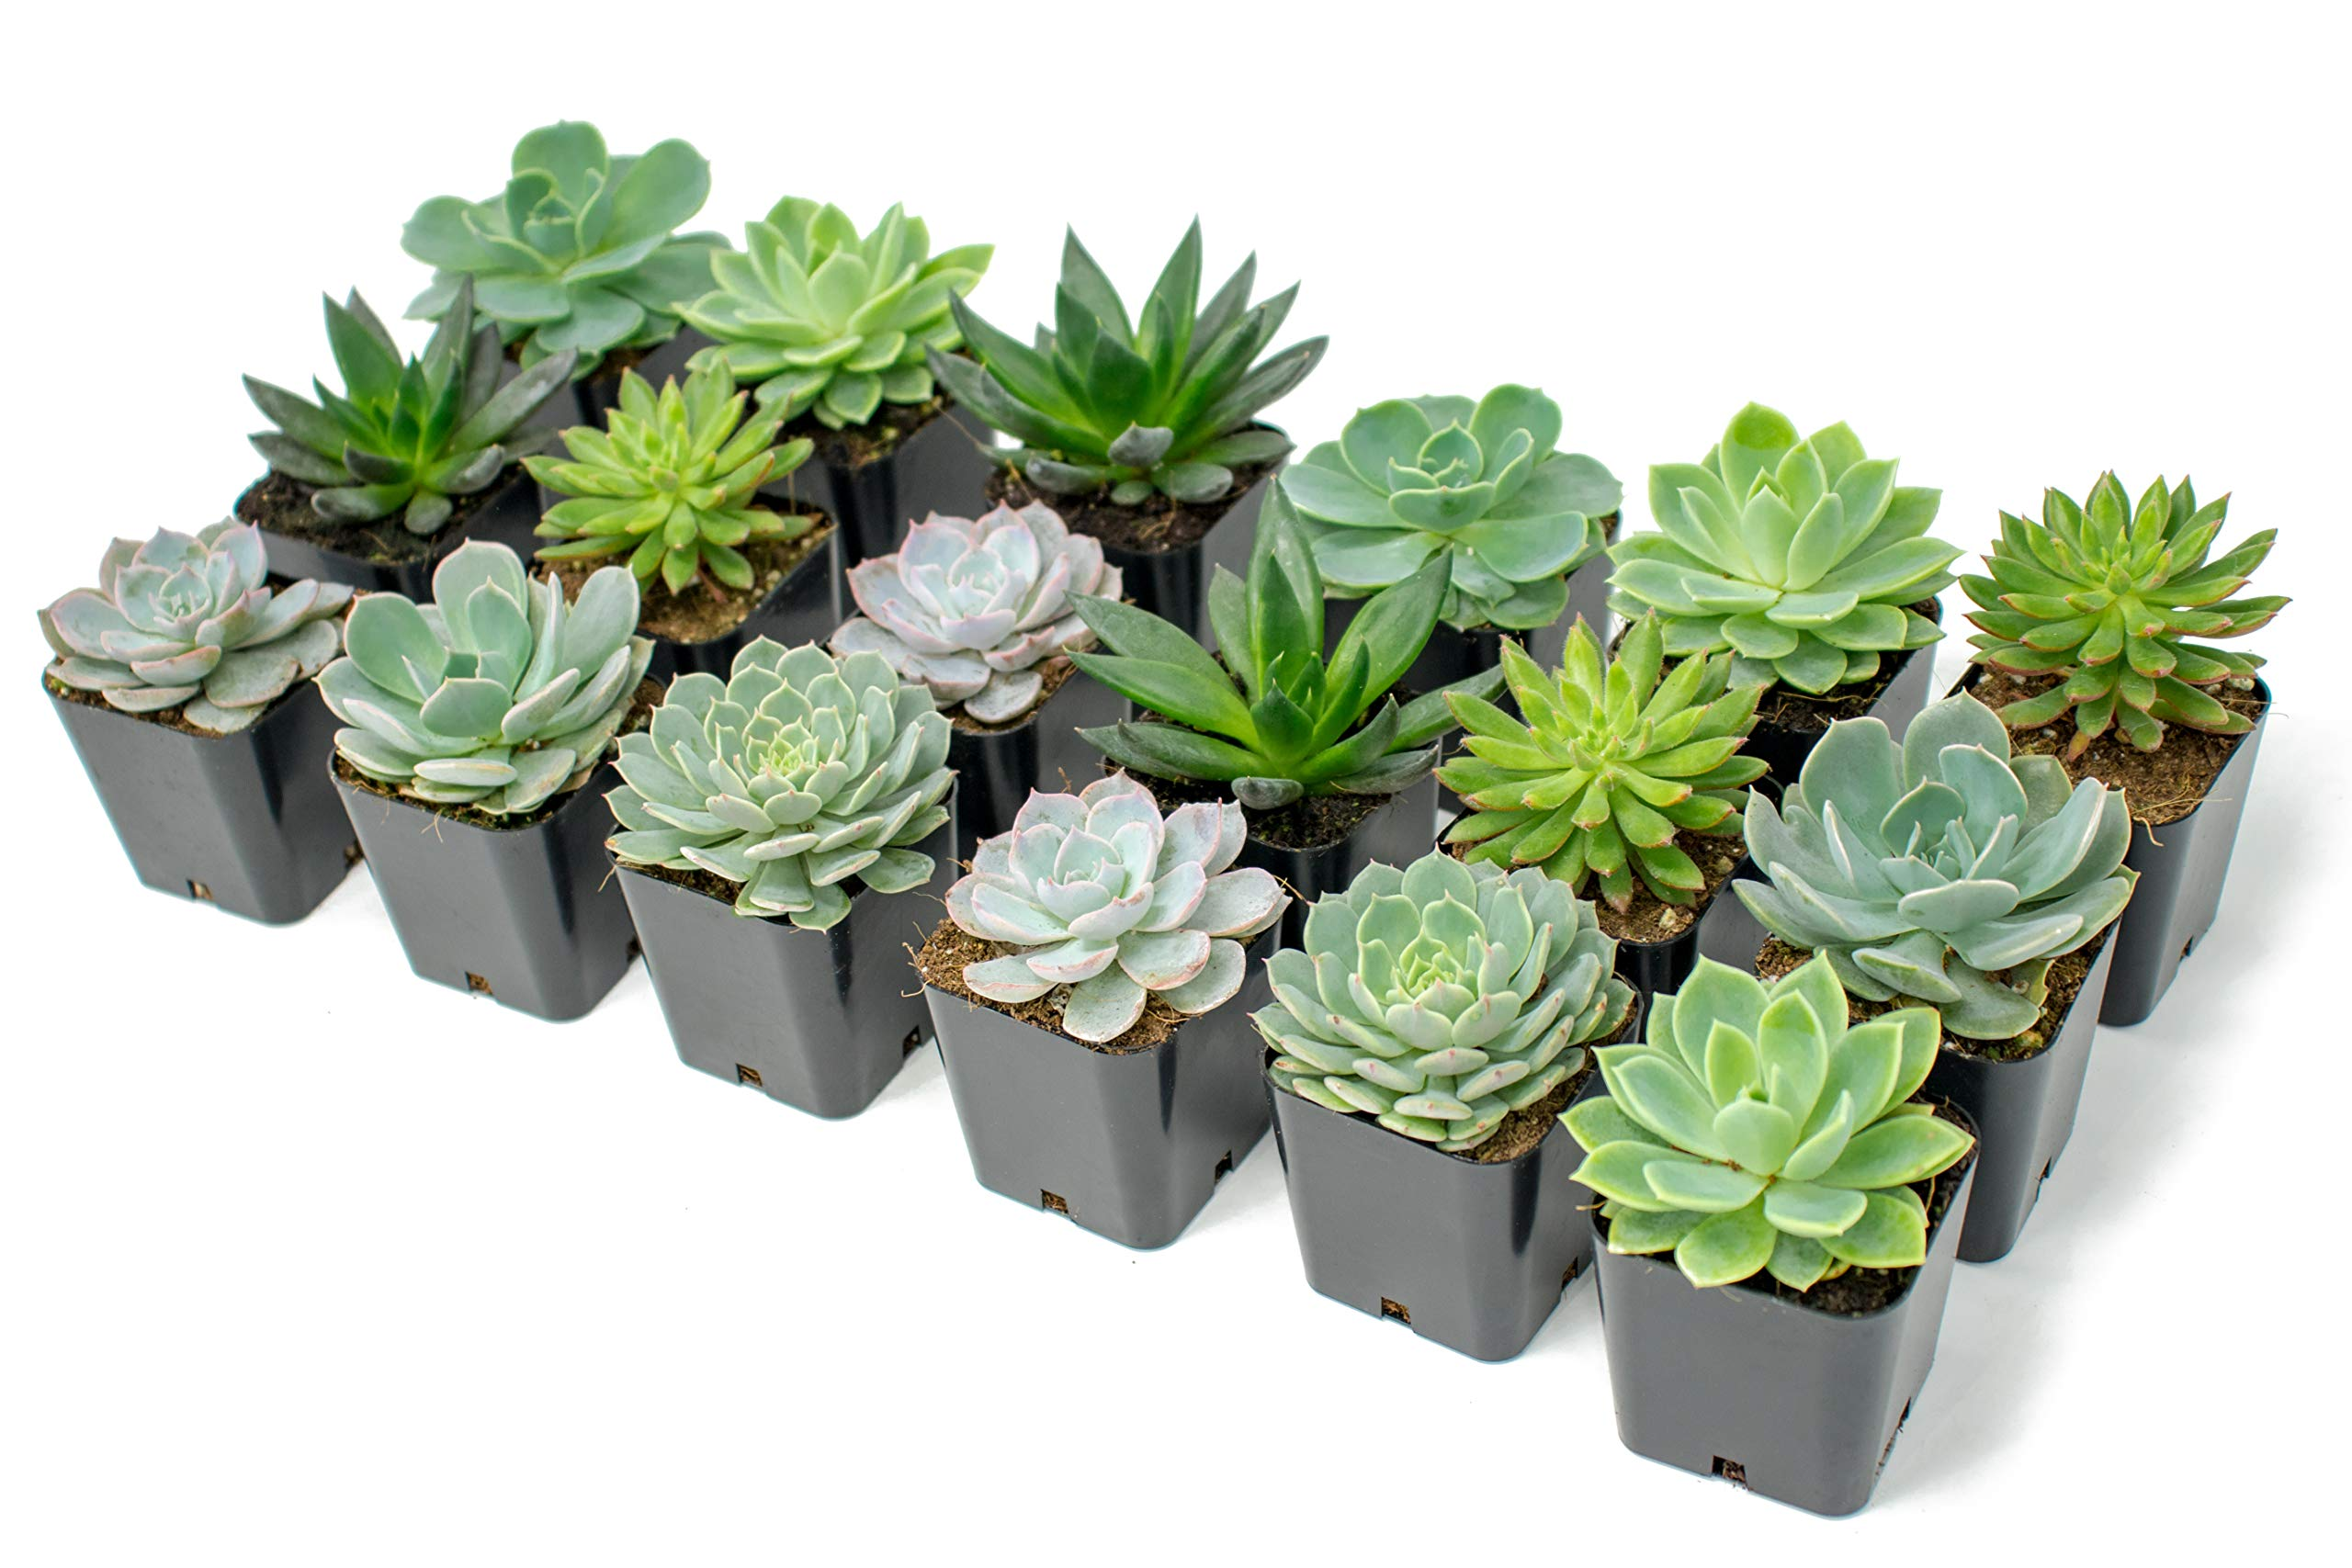 Succulent Plants | 18 Echeveria Succulents | Rooted in Planter Pots with Soil | Real Live Indoor Plants | Gifts or Room Decor by Plants for Pets by Plants for Pets